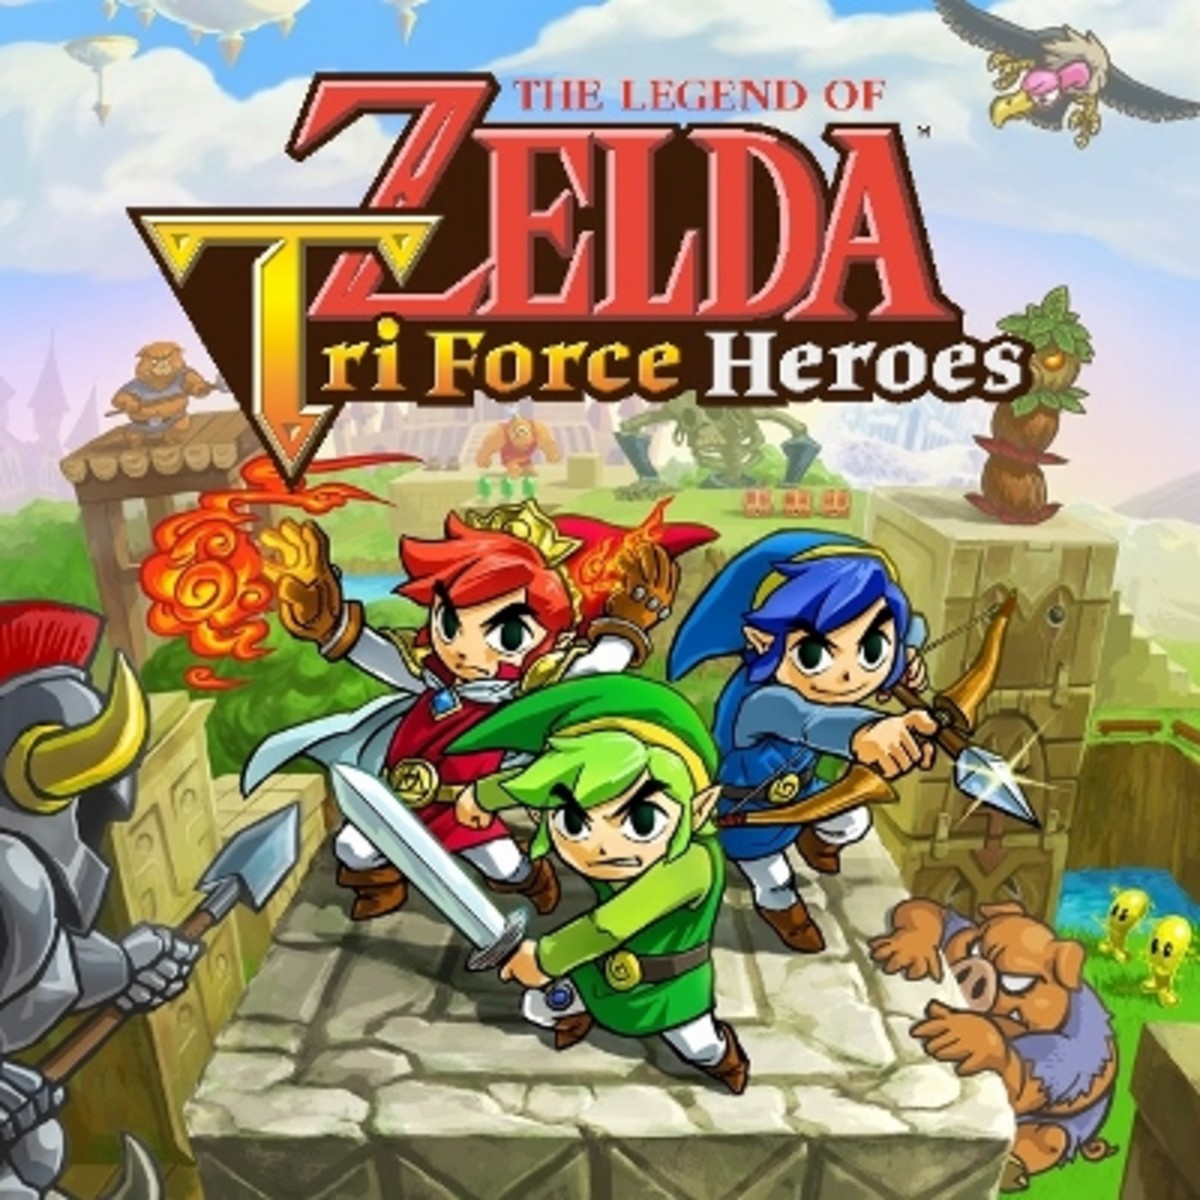 11 Games Like Zelda - Popular Action Adventure Games